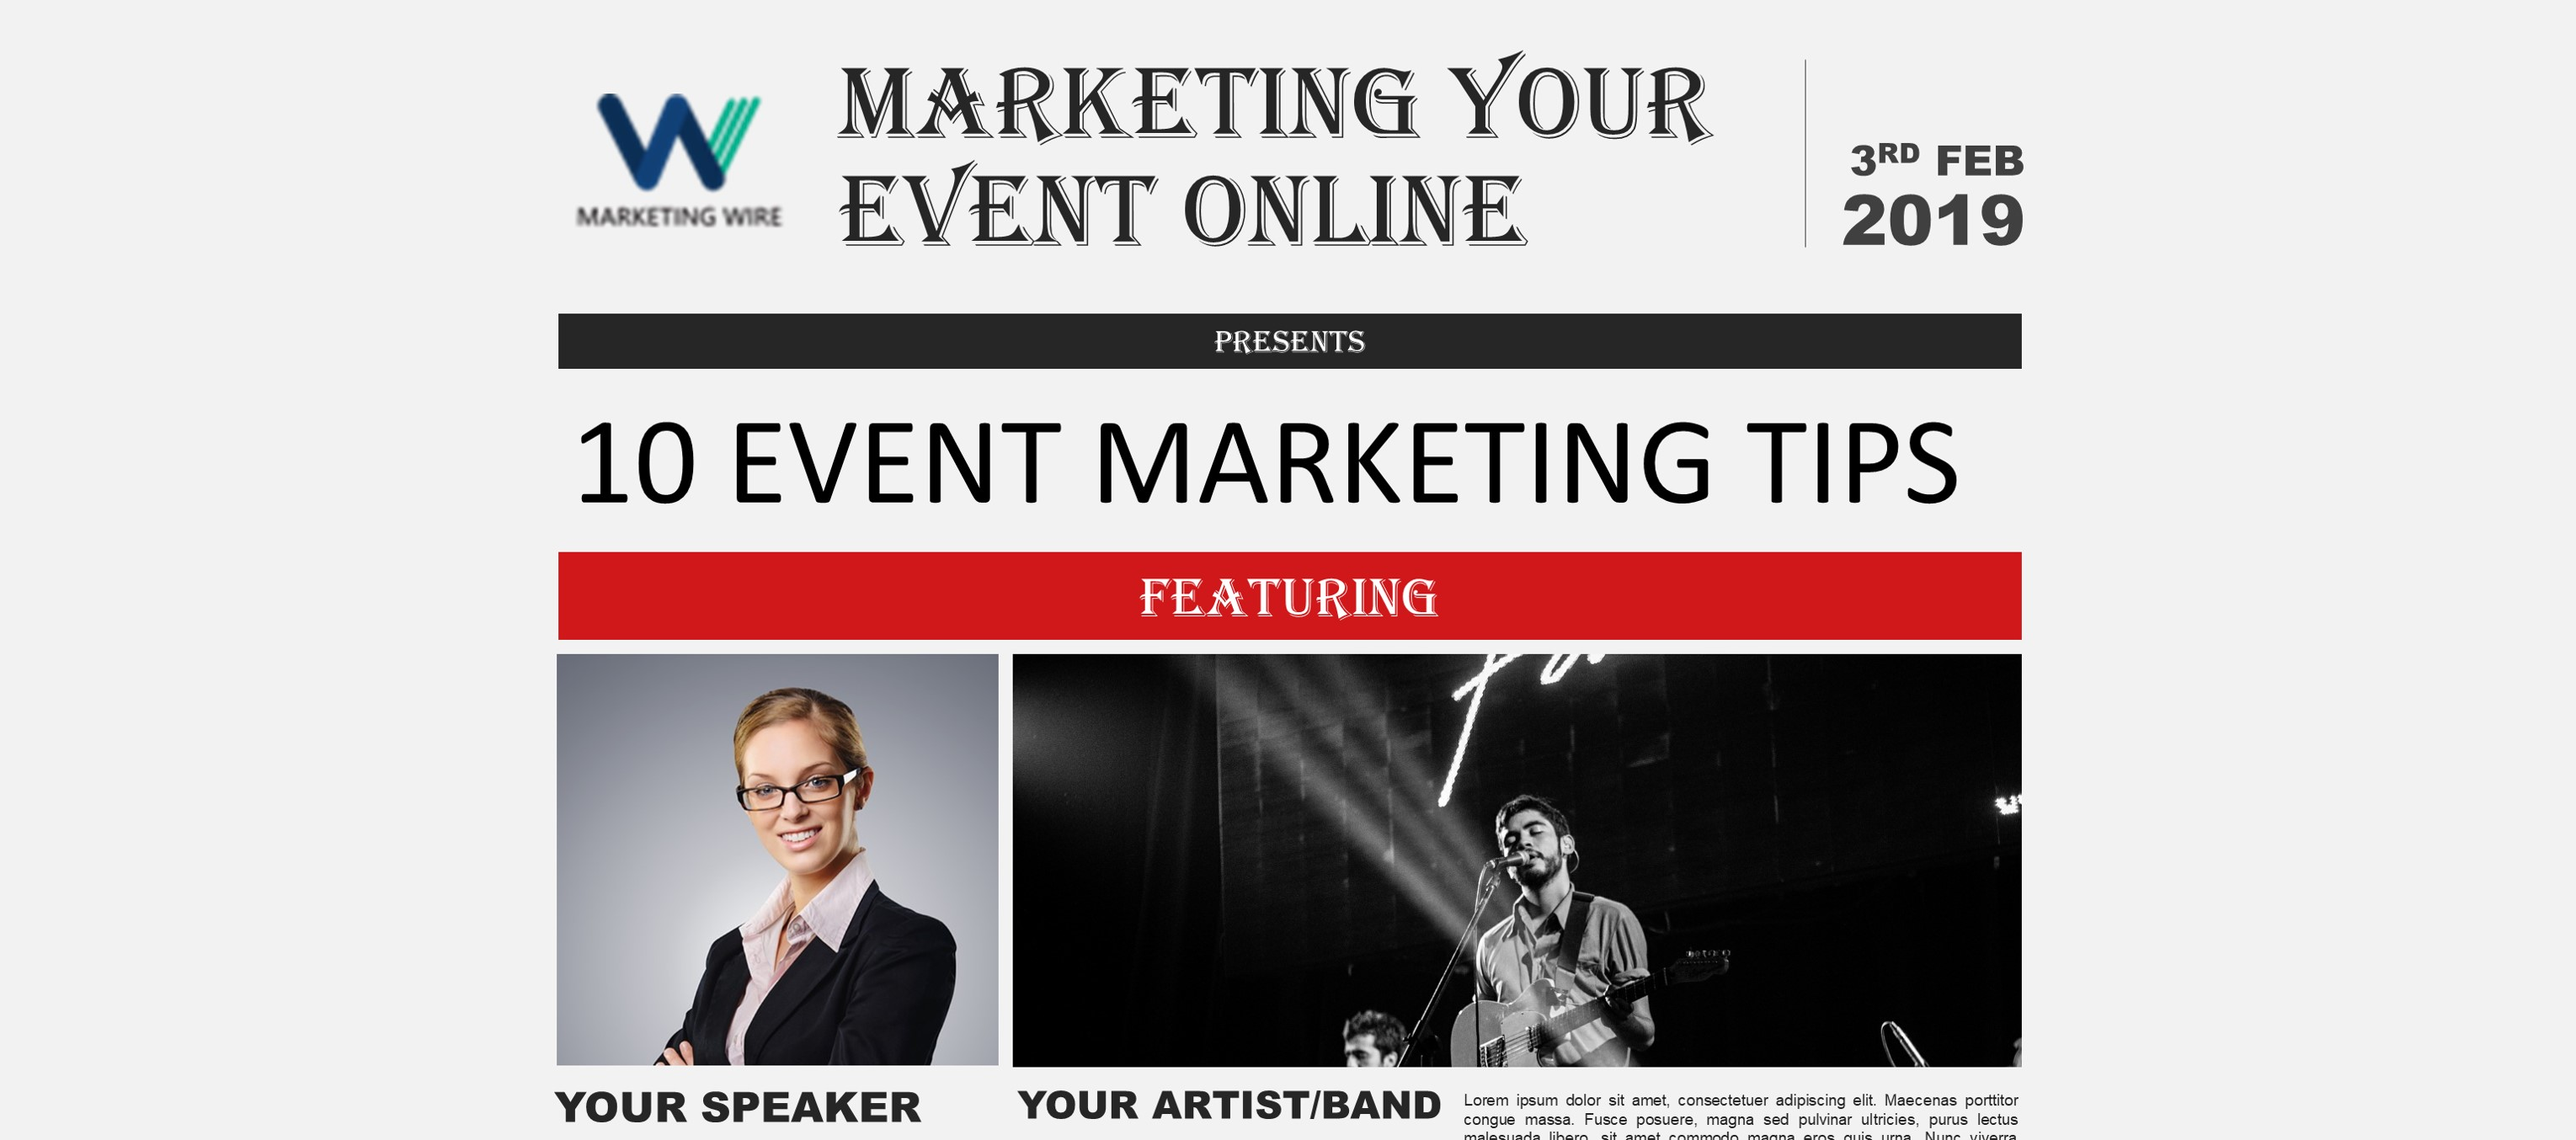 How to Market an Event Online 10 Event Marketing Tips in northeast india